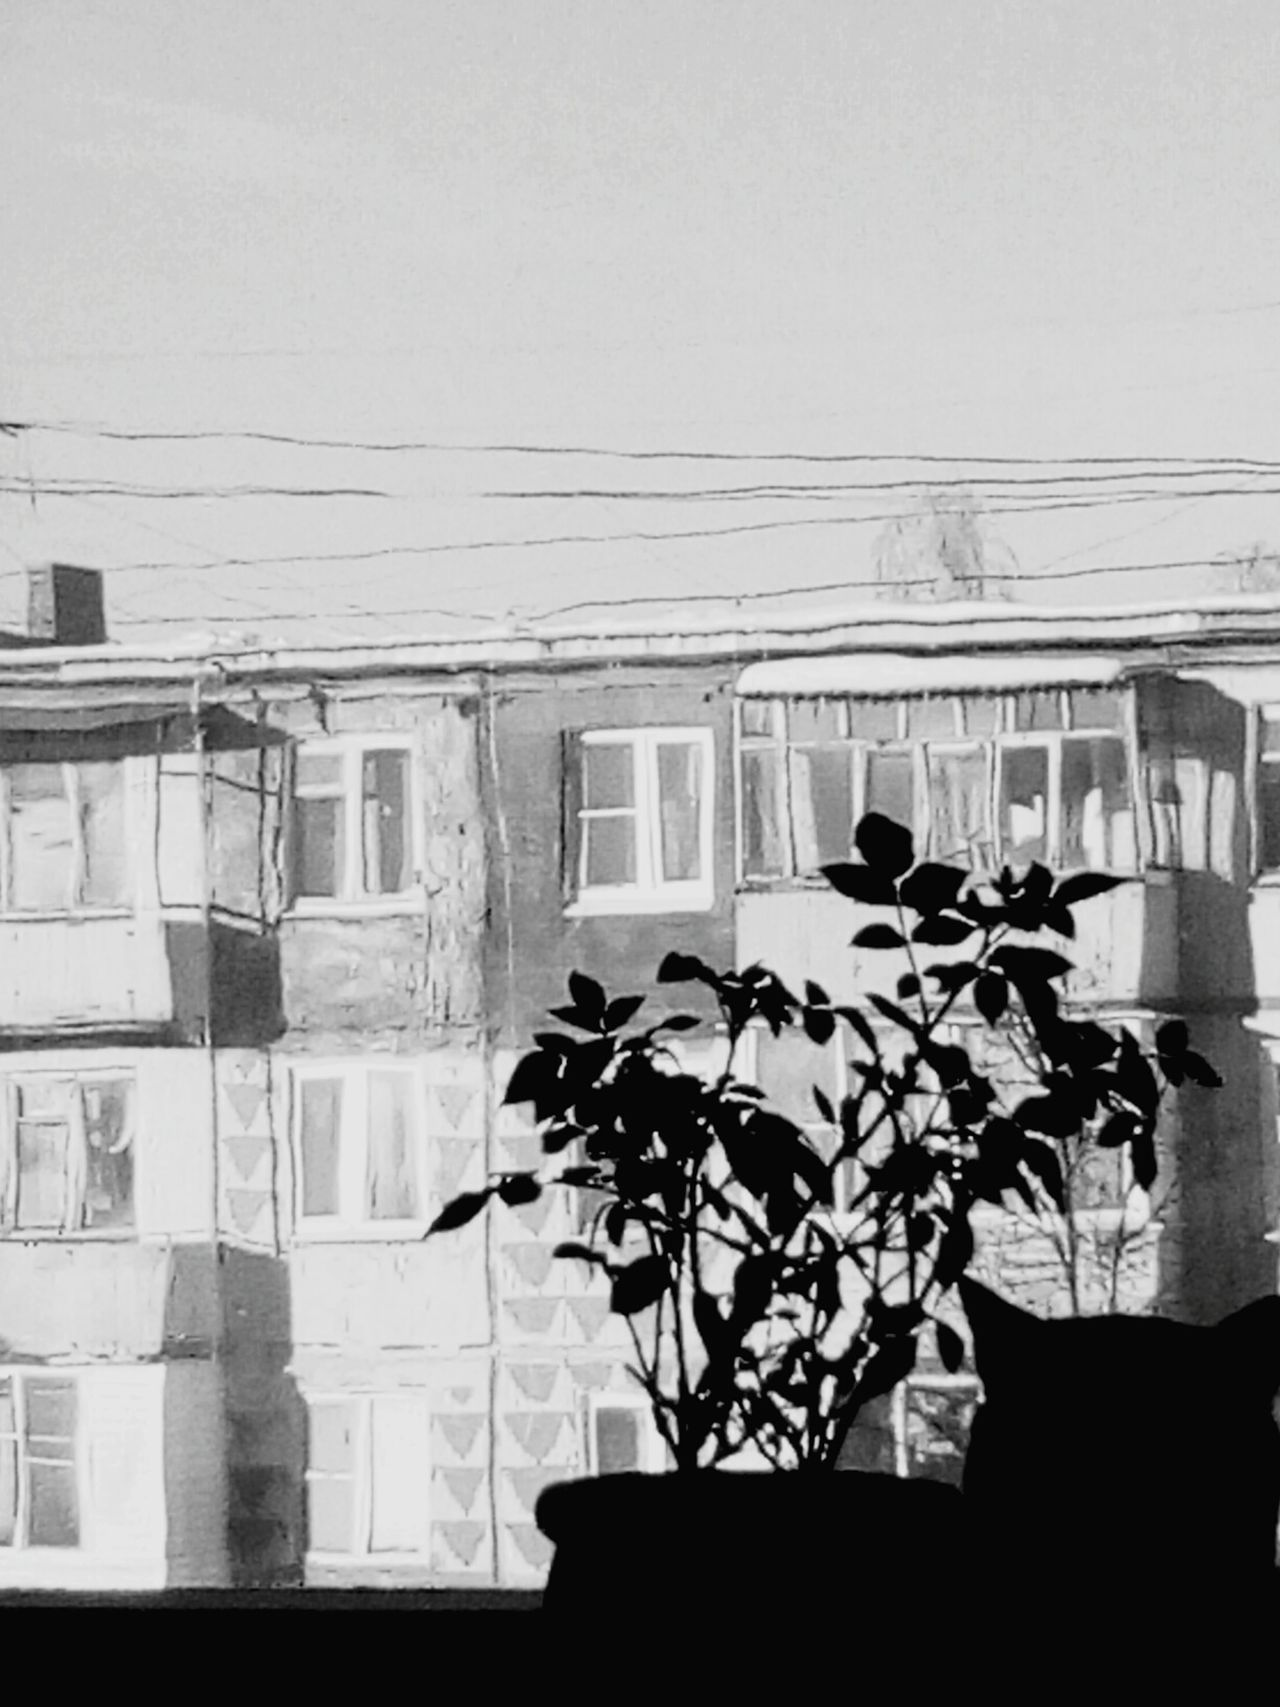 Architecture Building Exterior Built Structure Window No People City Residential Building Outdoors Day Nature Sky Eye4photography  Indoors  Ivy Cat Cats Of EyeEm Silhouette Black And White Collection  Blackwhite Black And White Photography Scrapbook Indoors  EyeEm City